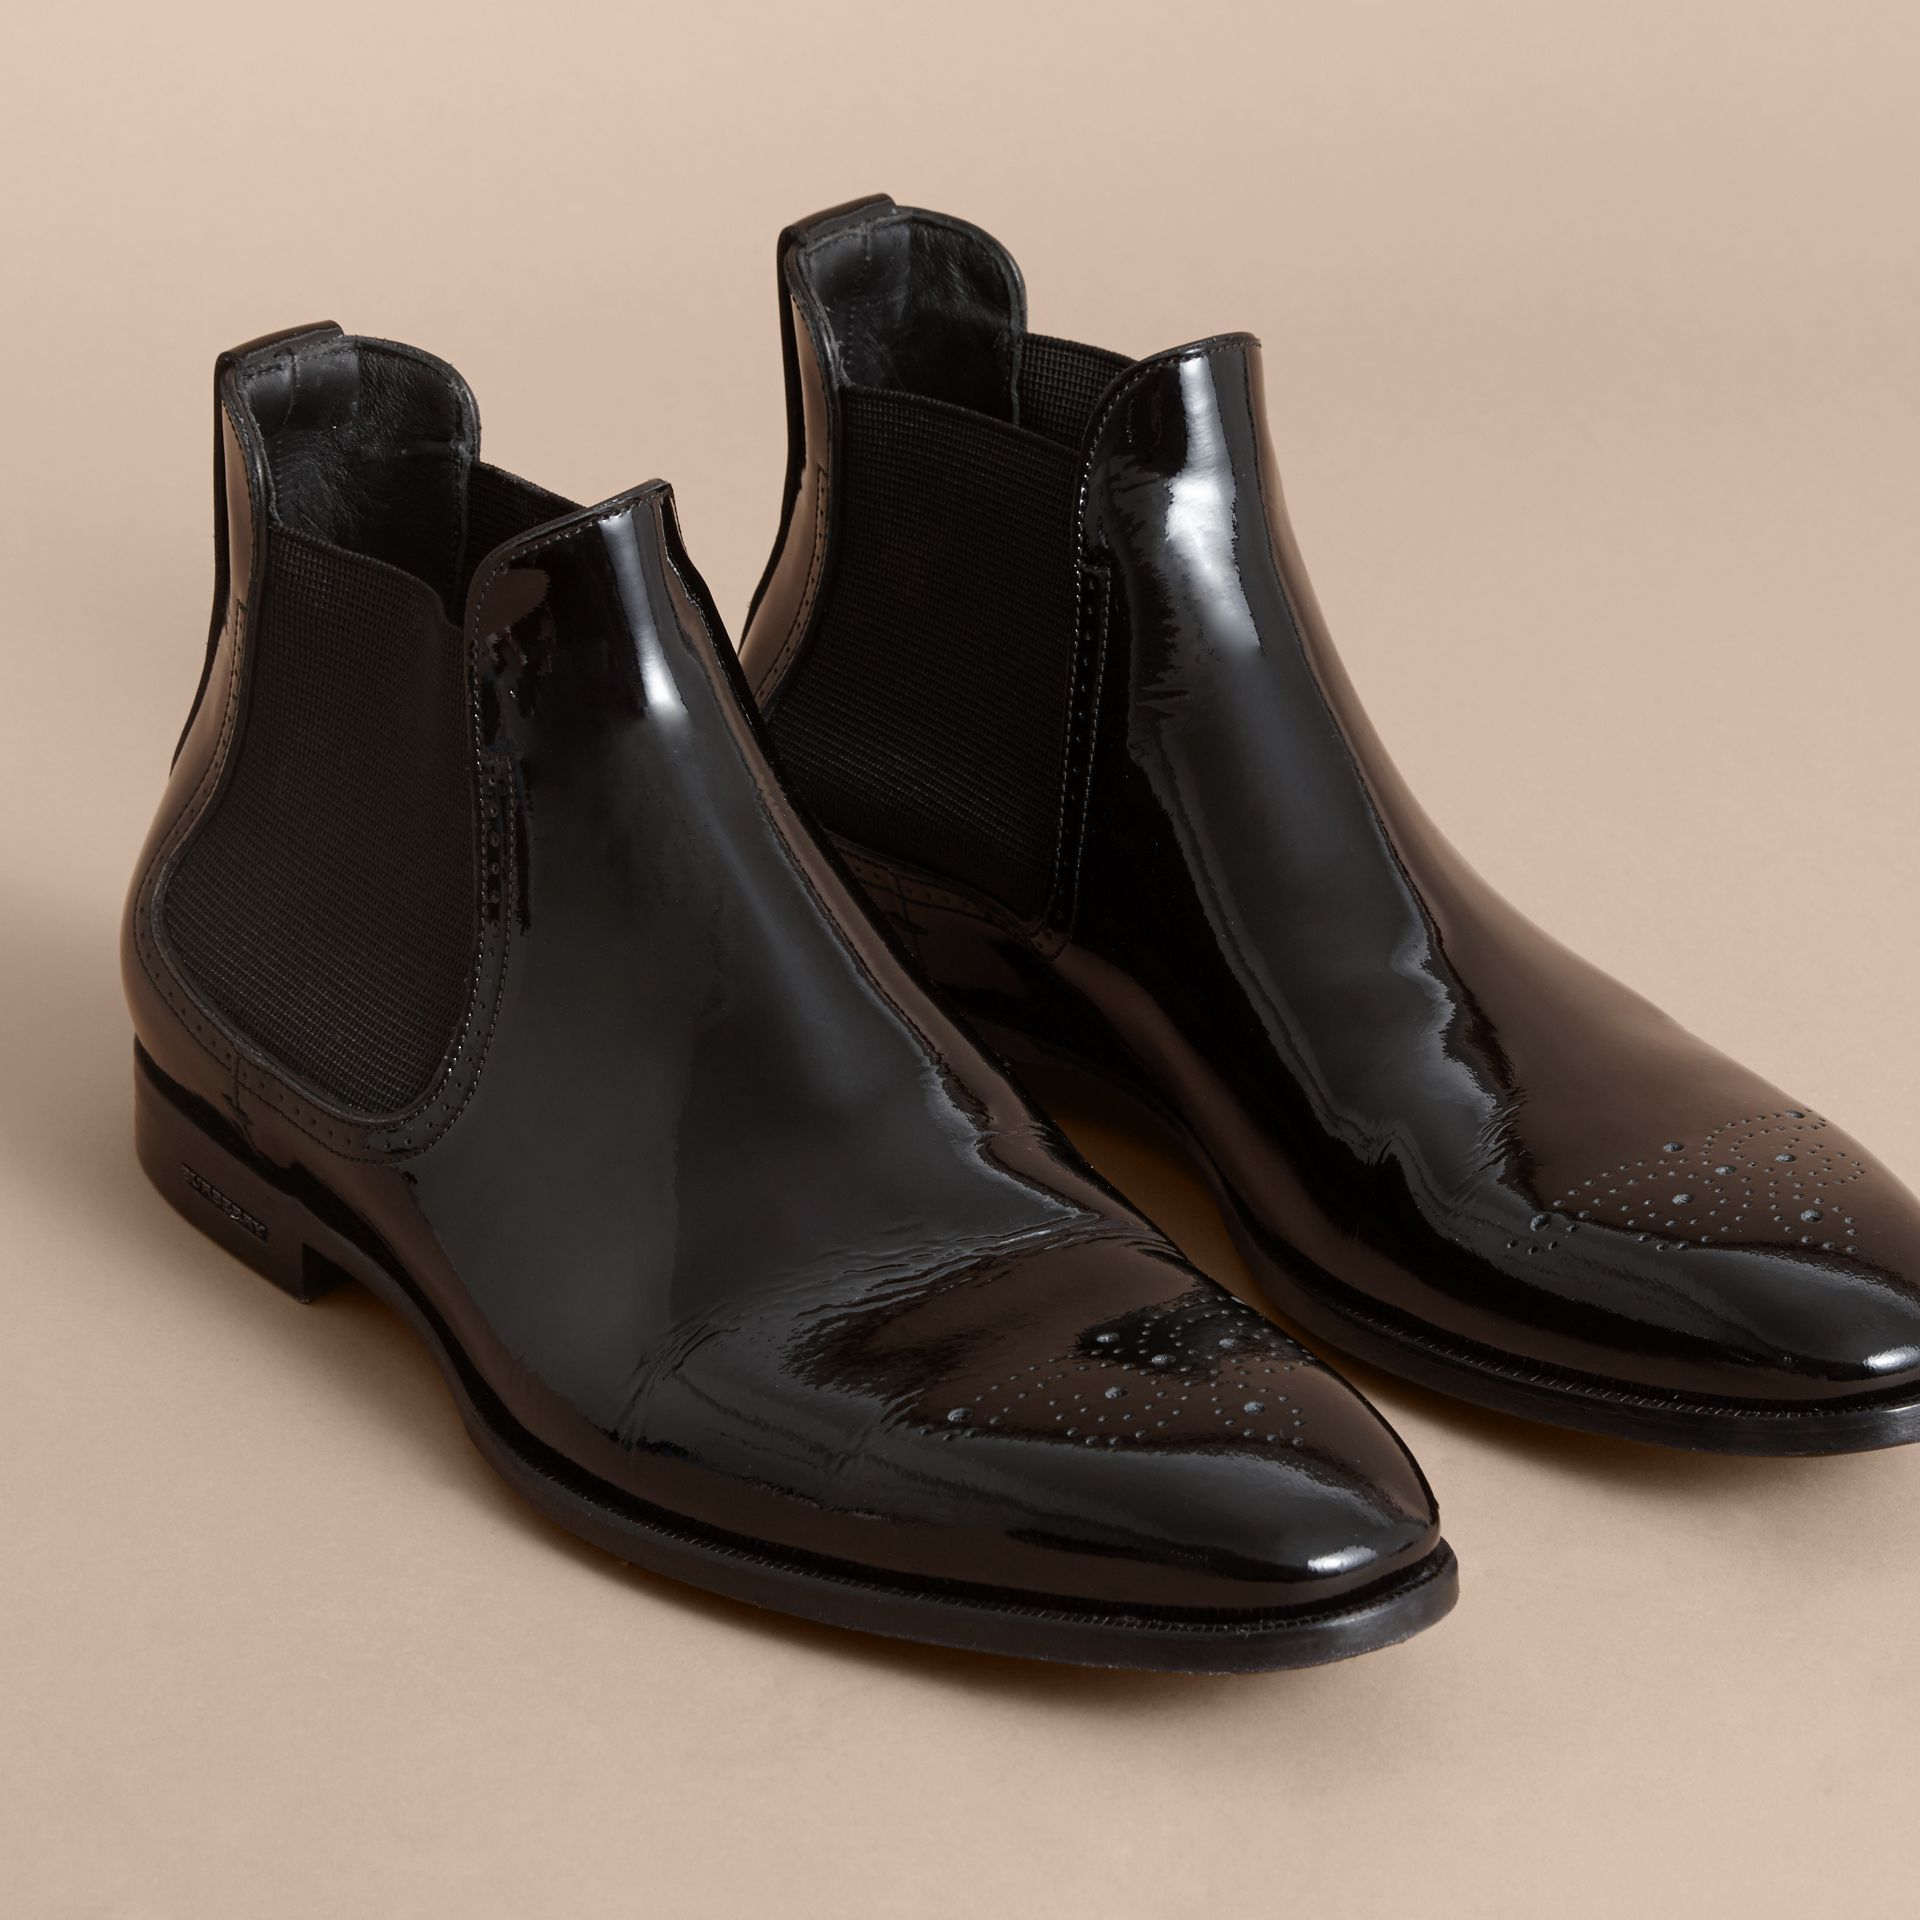 Polished Leather Chelsea Boots in Black - Men | Burberry Australia - gallery image 5